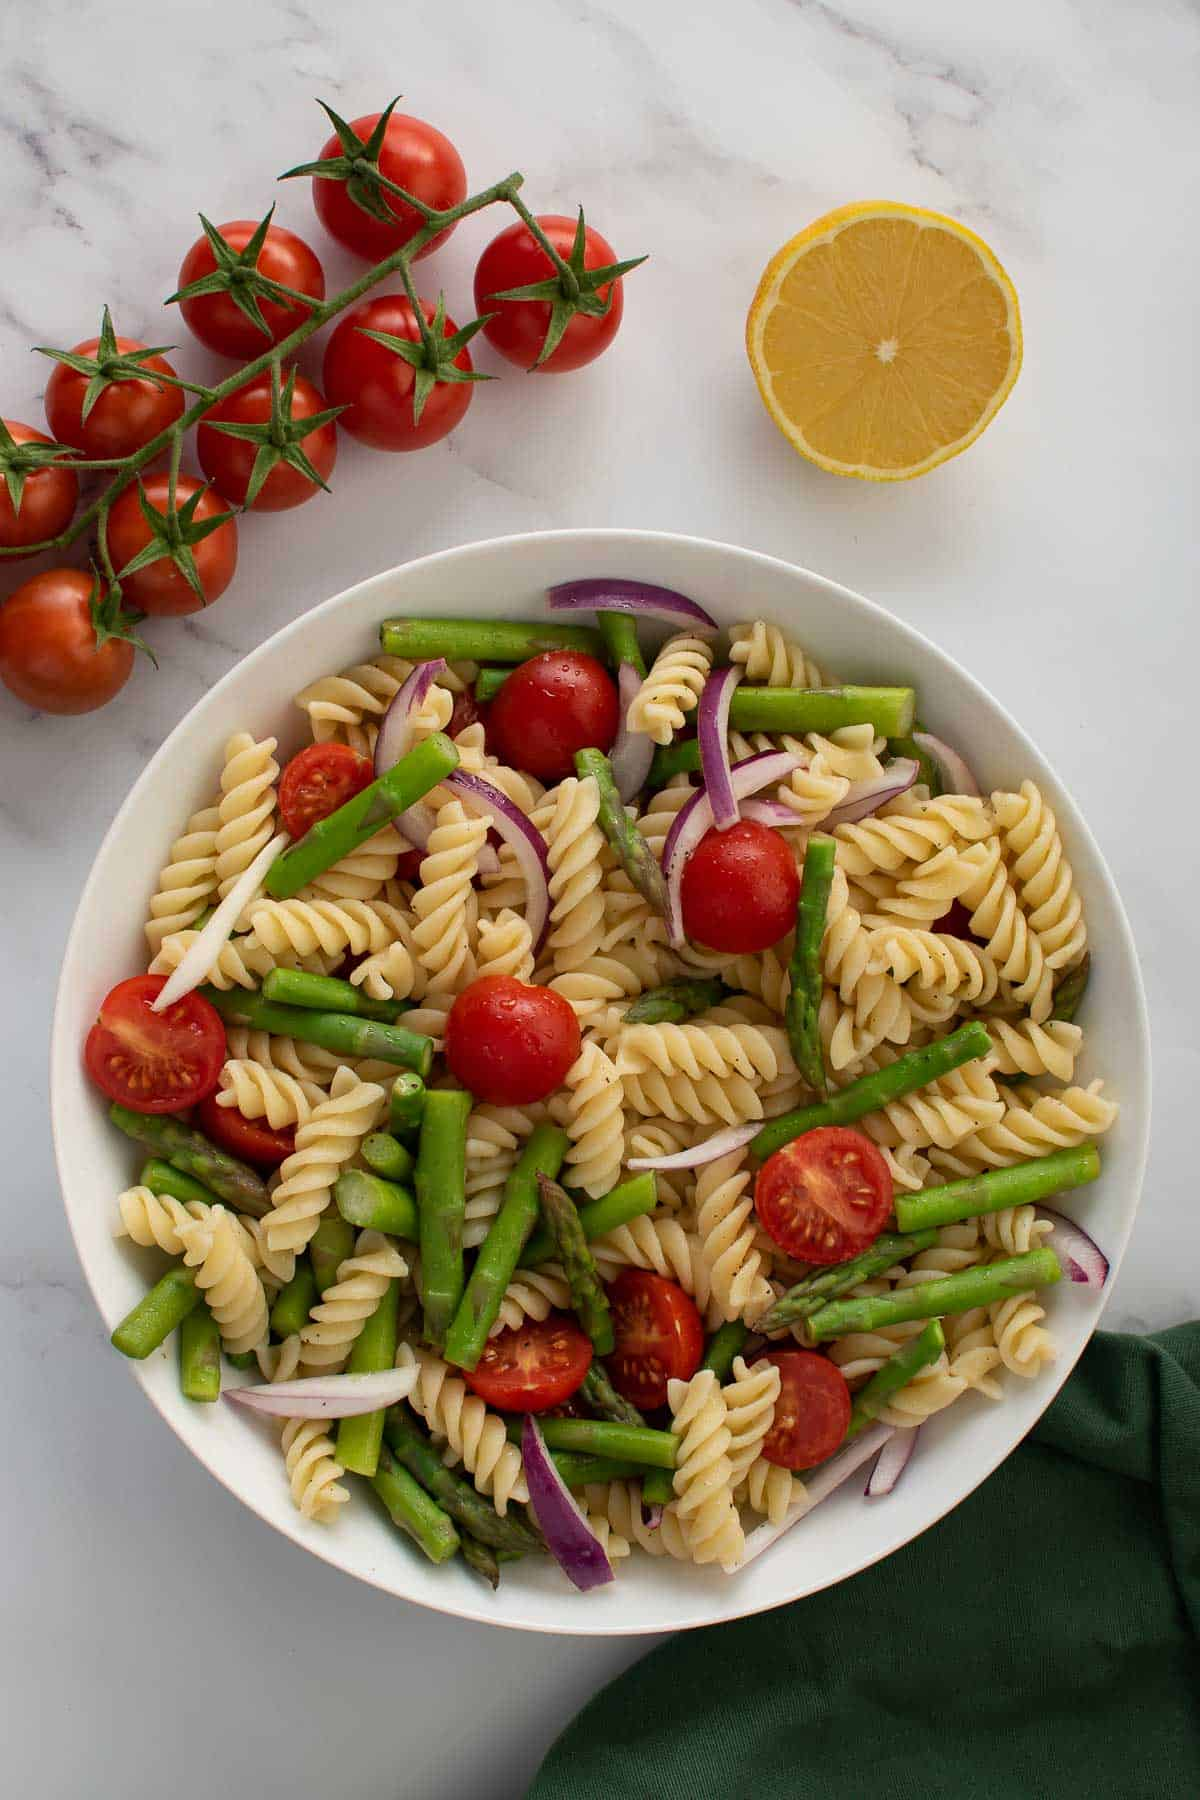 Pasta salad with asparagus and tomatoes in a bowl.